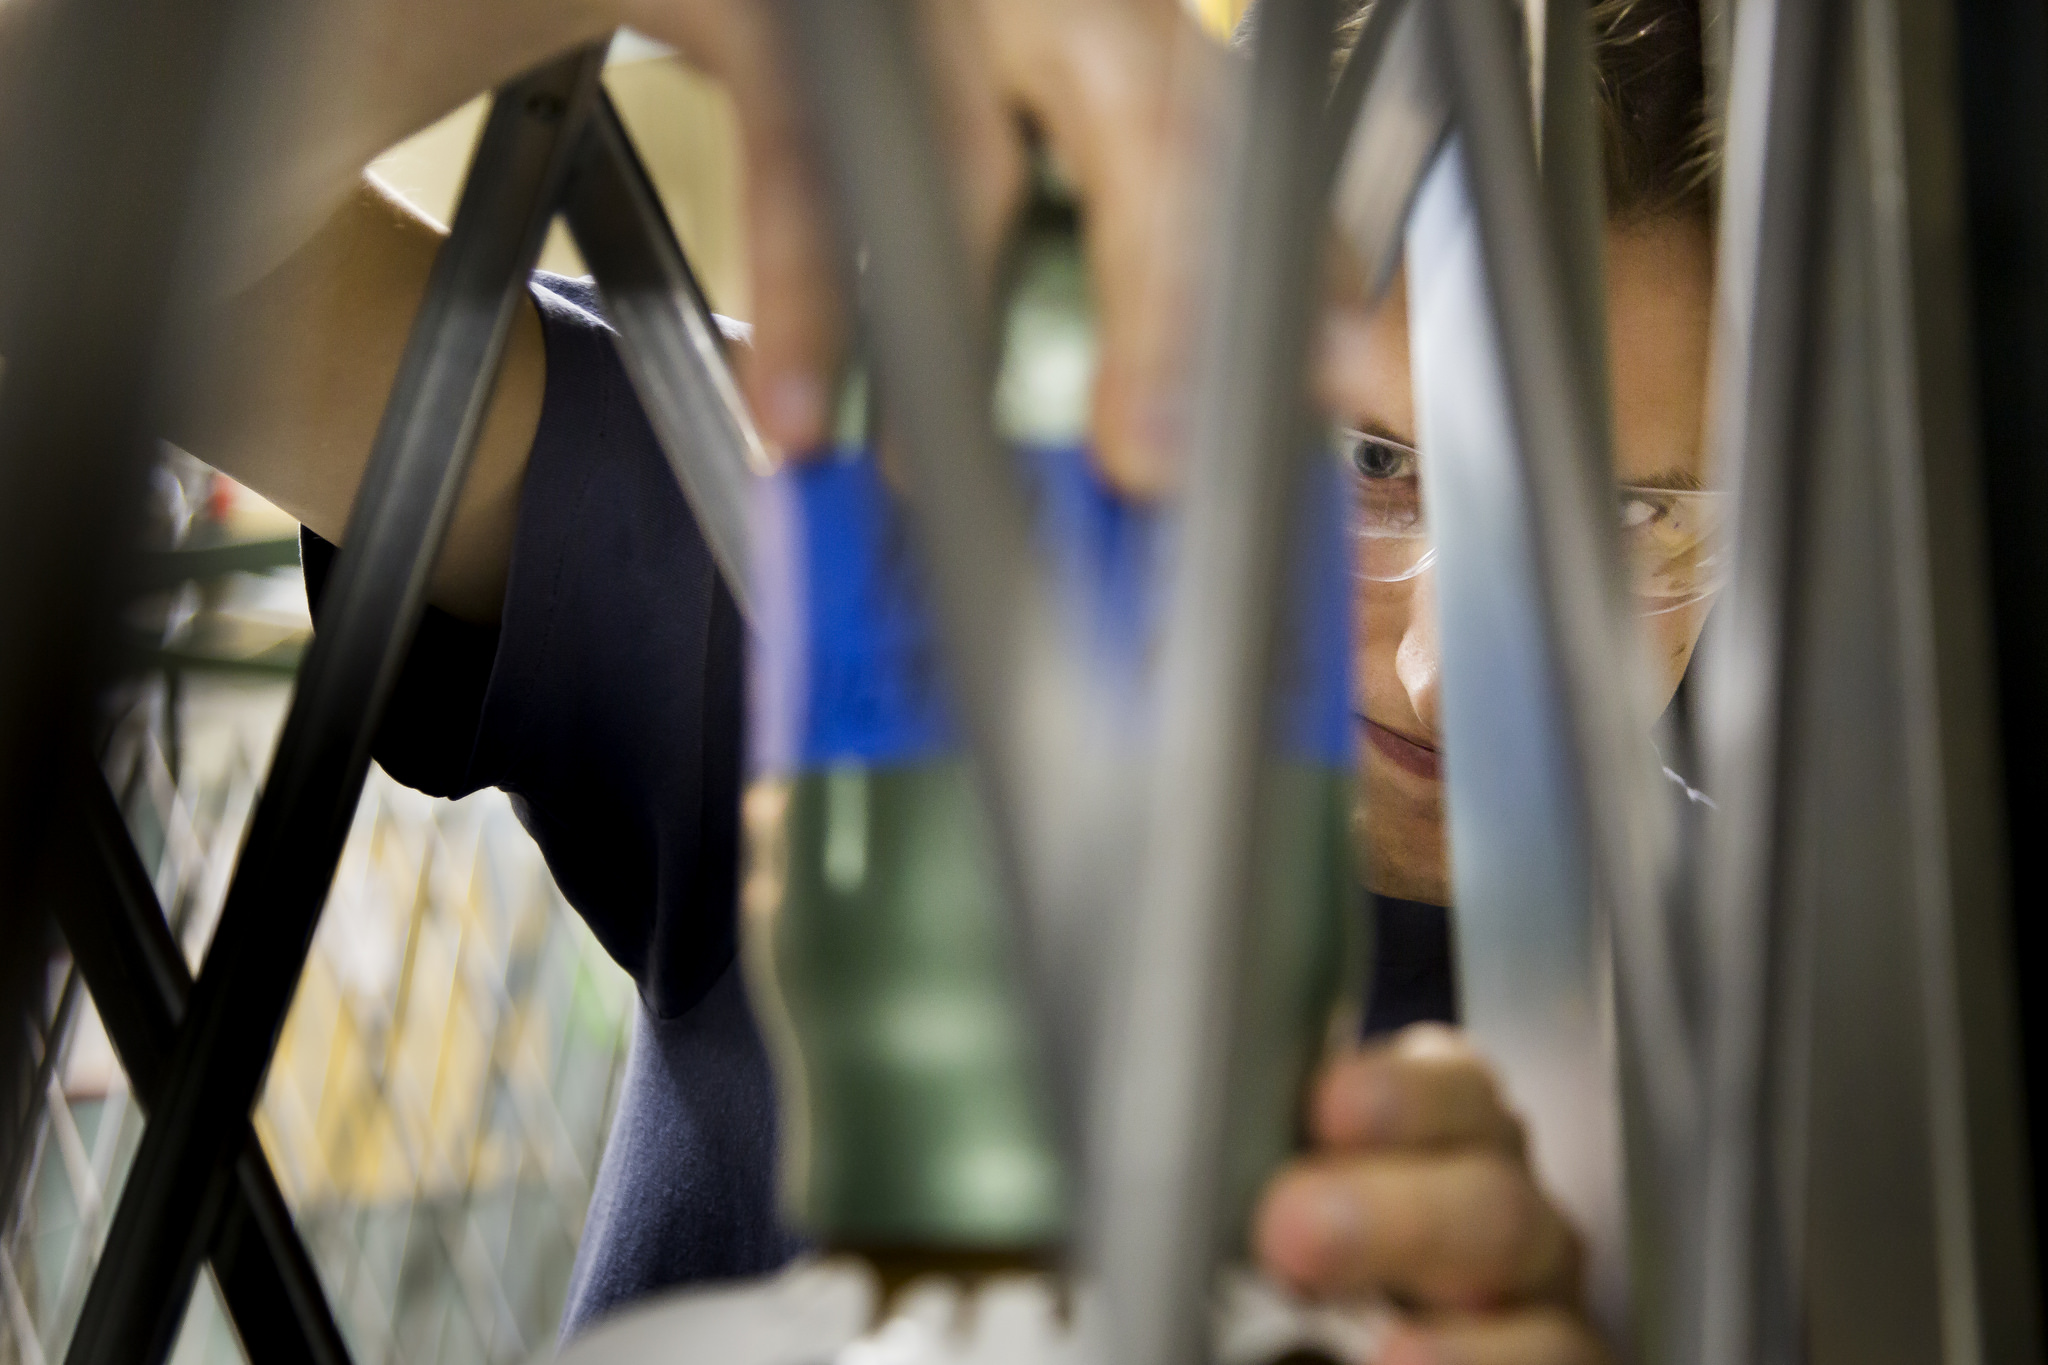 A close-up photograph seen through what looks like a cage of a student handling some sort of cylinder.